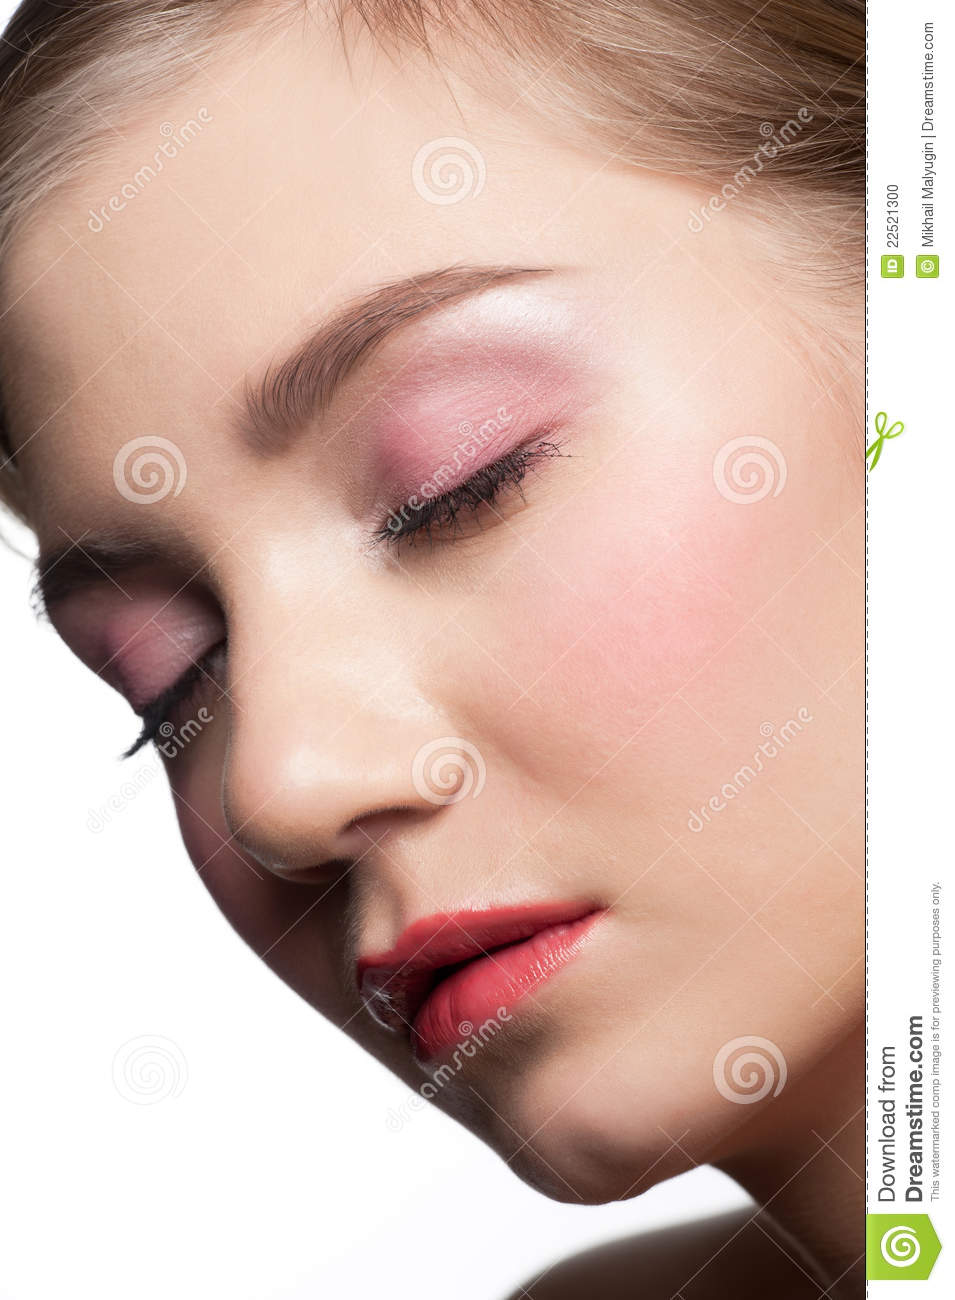 Beautiful Woman With Closed Eyes Stock Photo - Image: 22521300